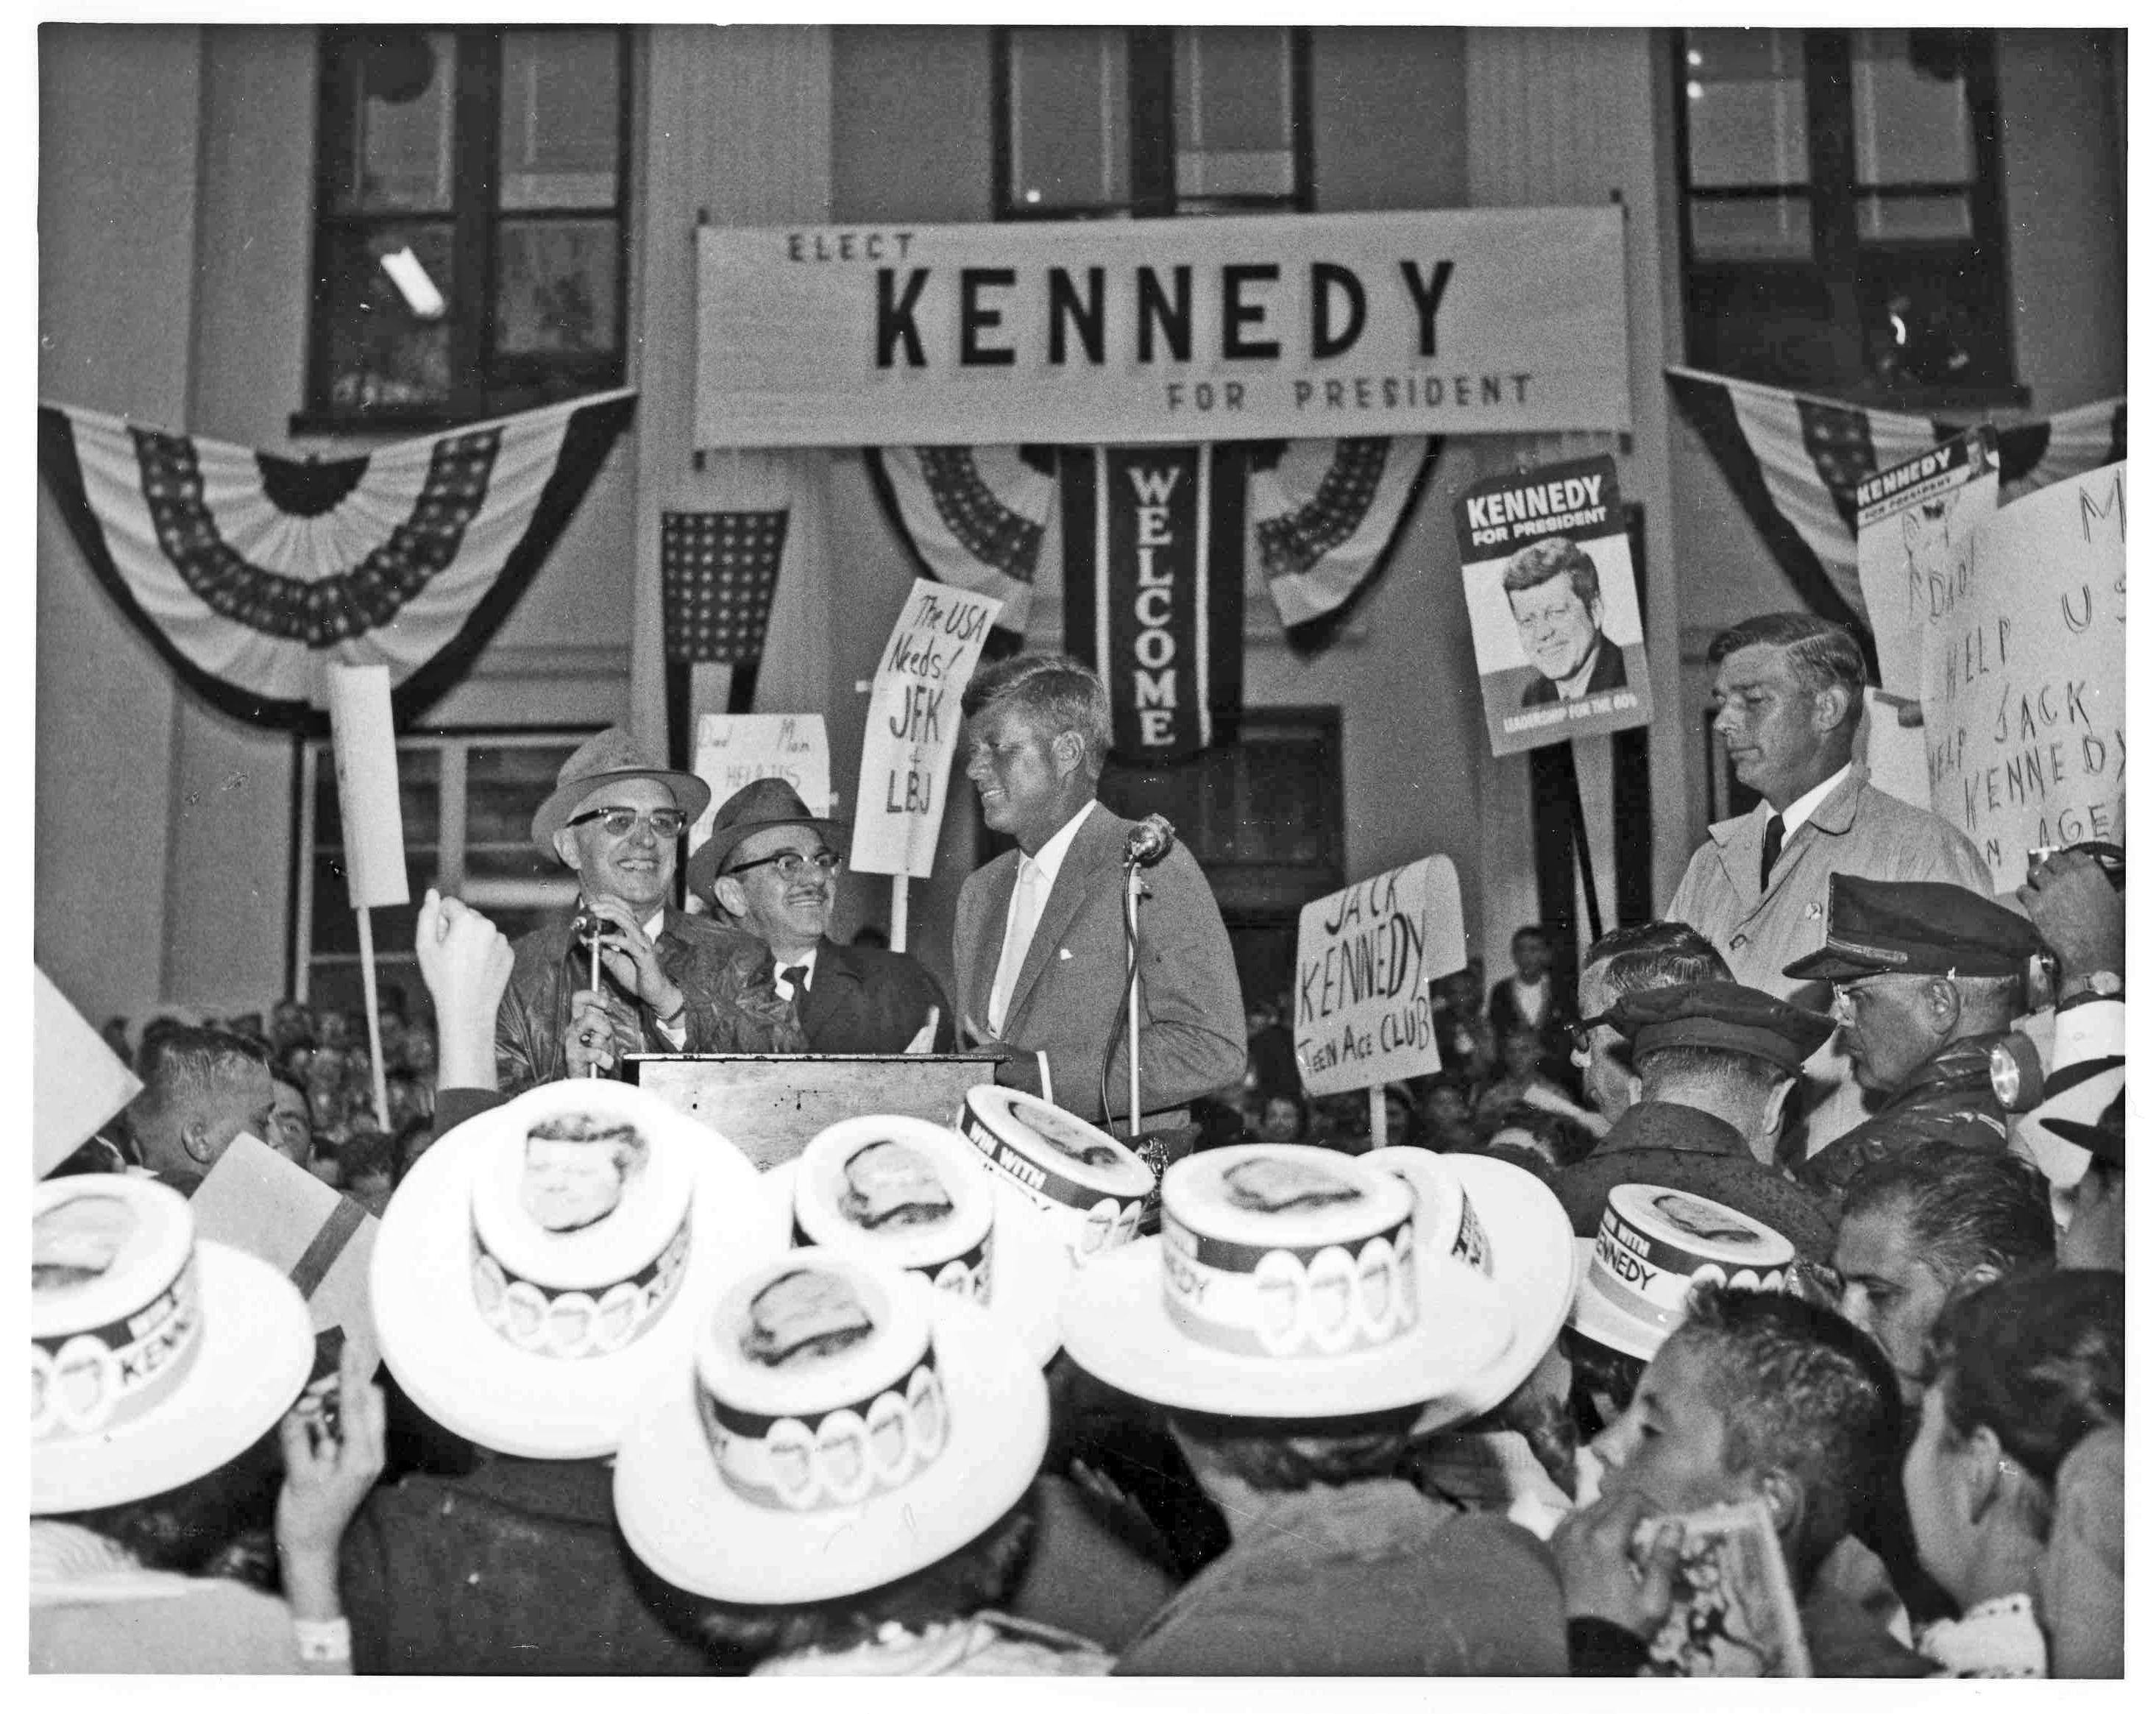 This photo was supplied by Rome Historical Society and Museum.  It shows Senator Kennedy approaching the podium to make brief remarks on his 9/30/1960 stop in Rome.